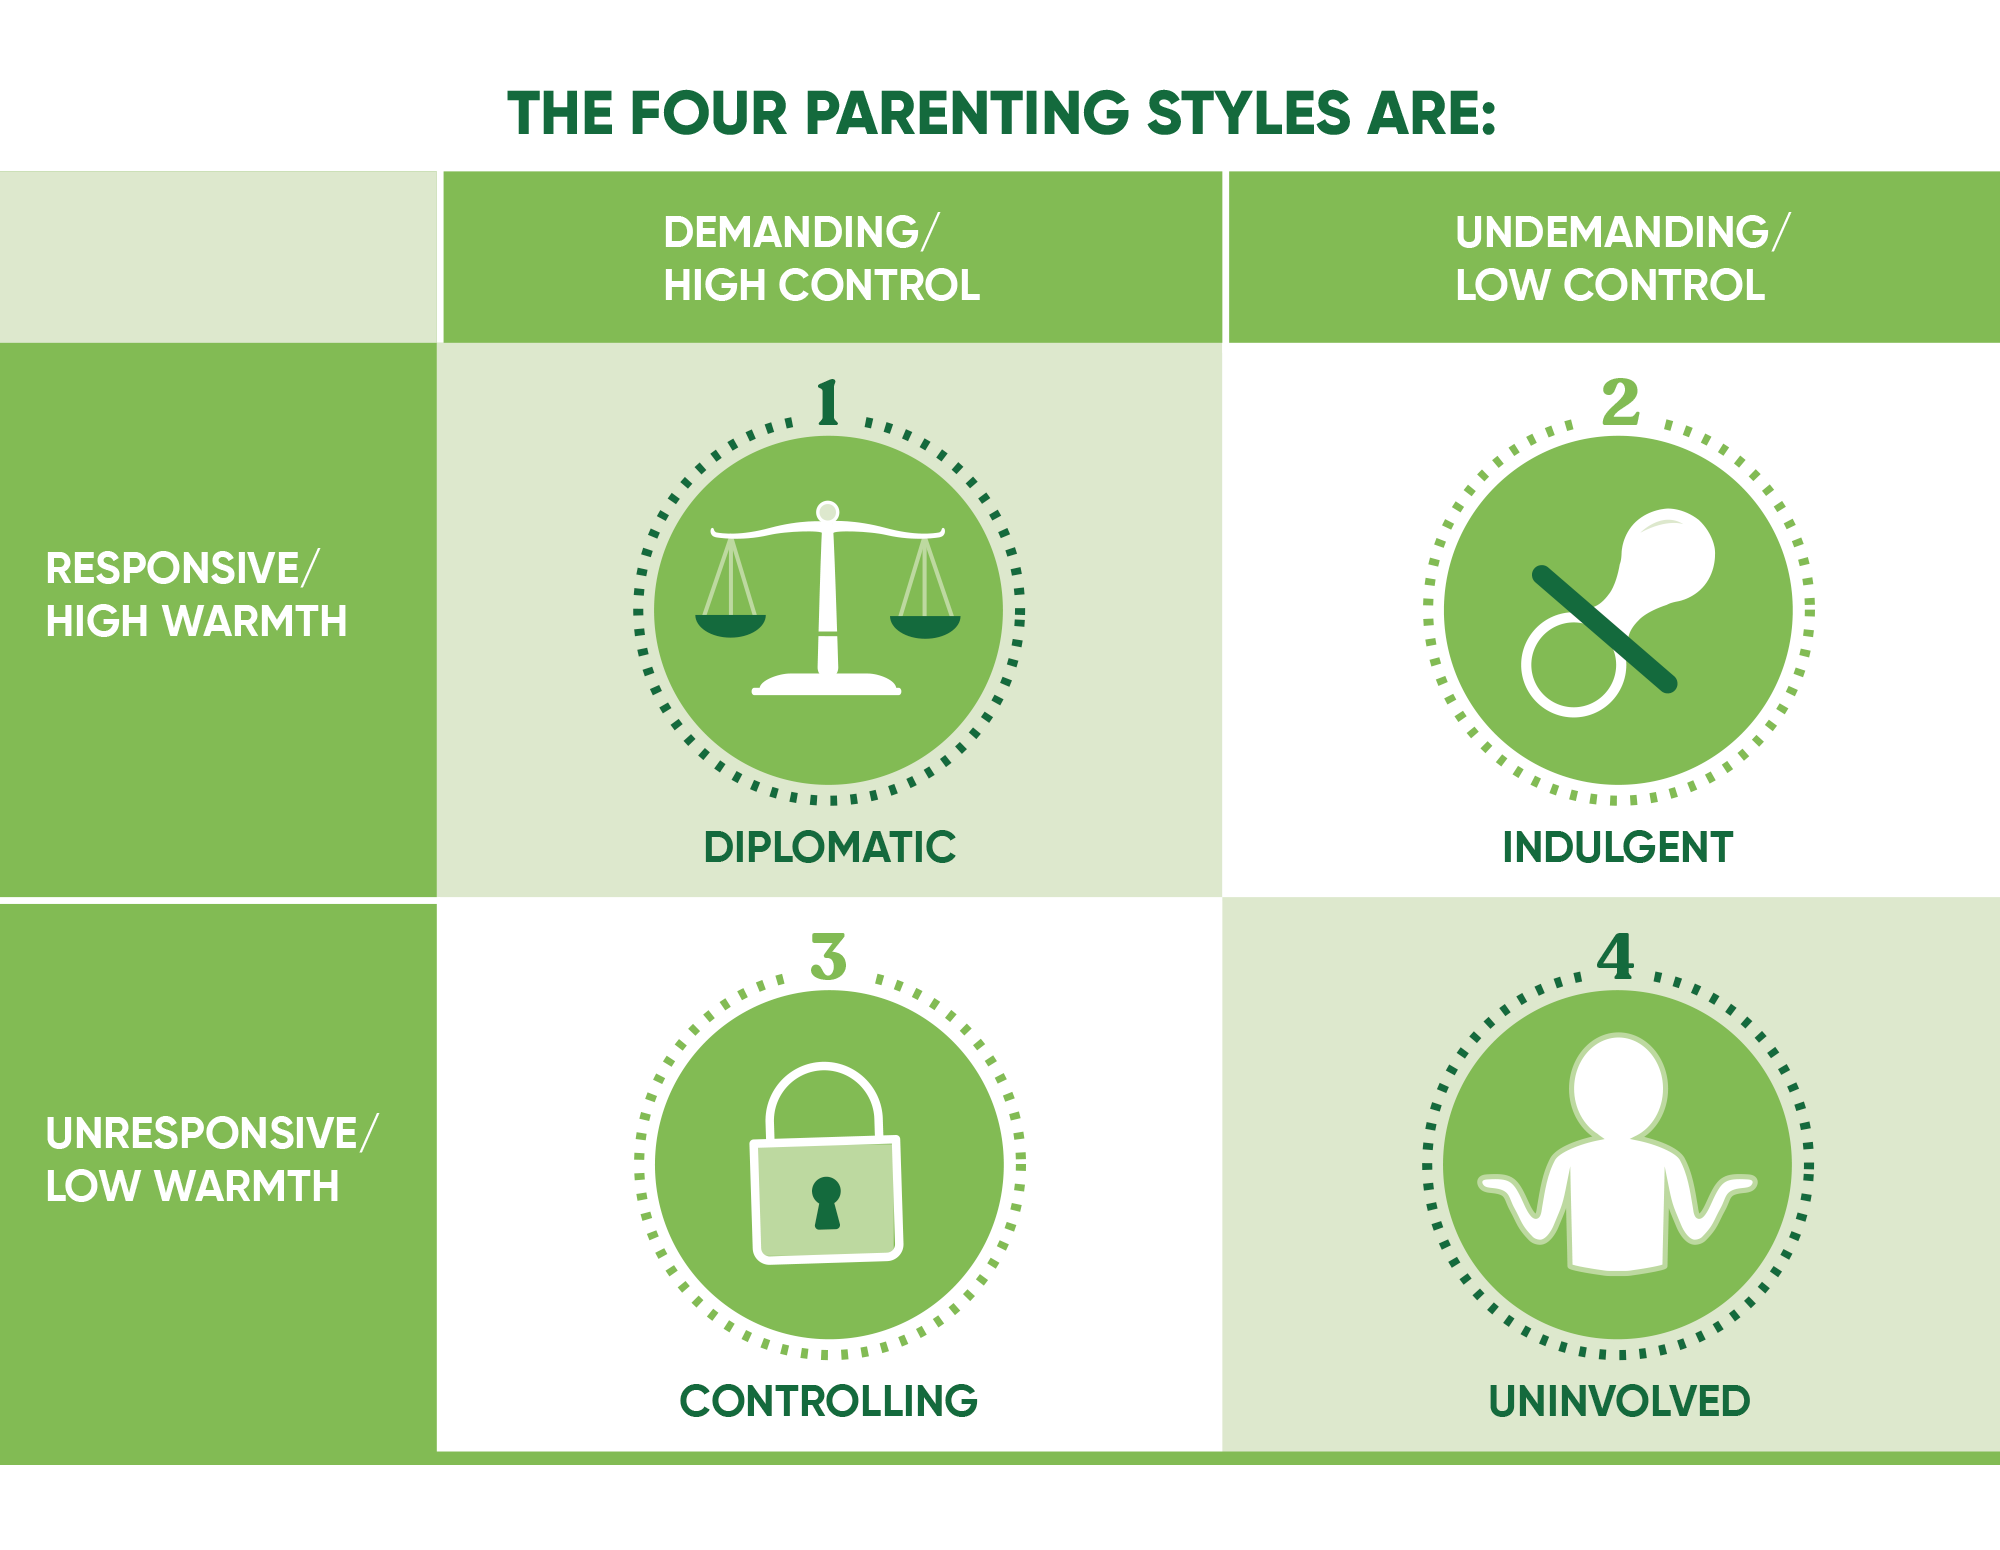 The four parenting styles